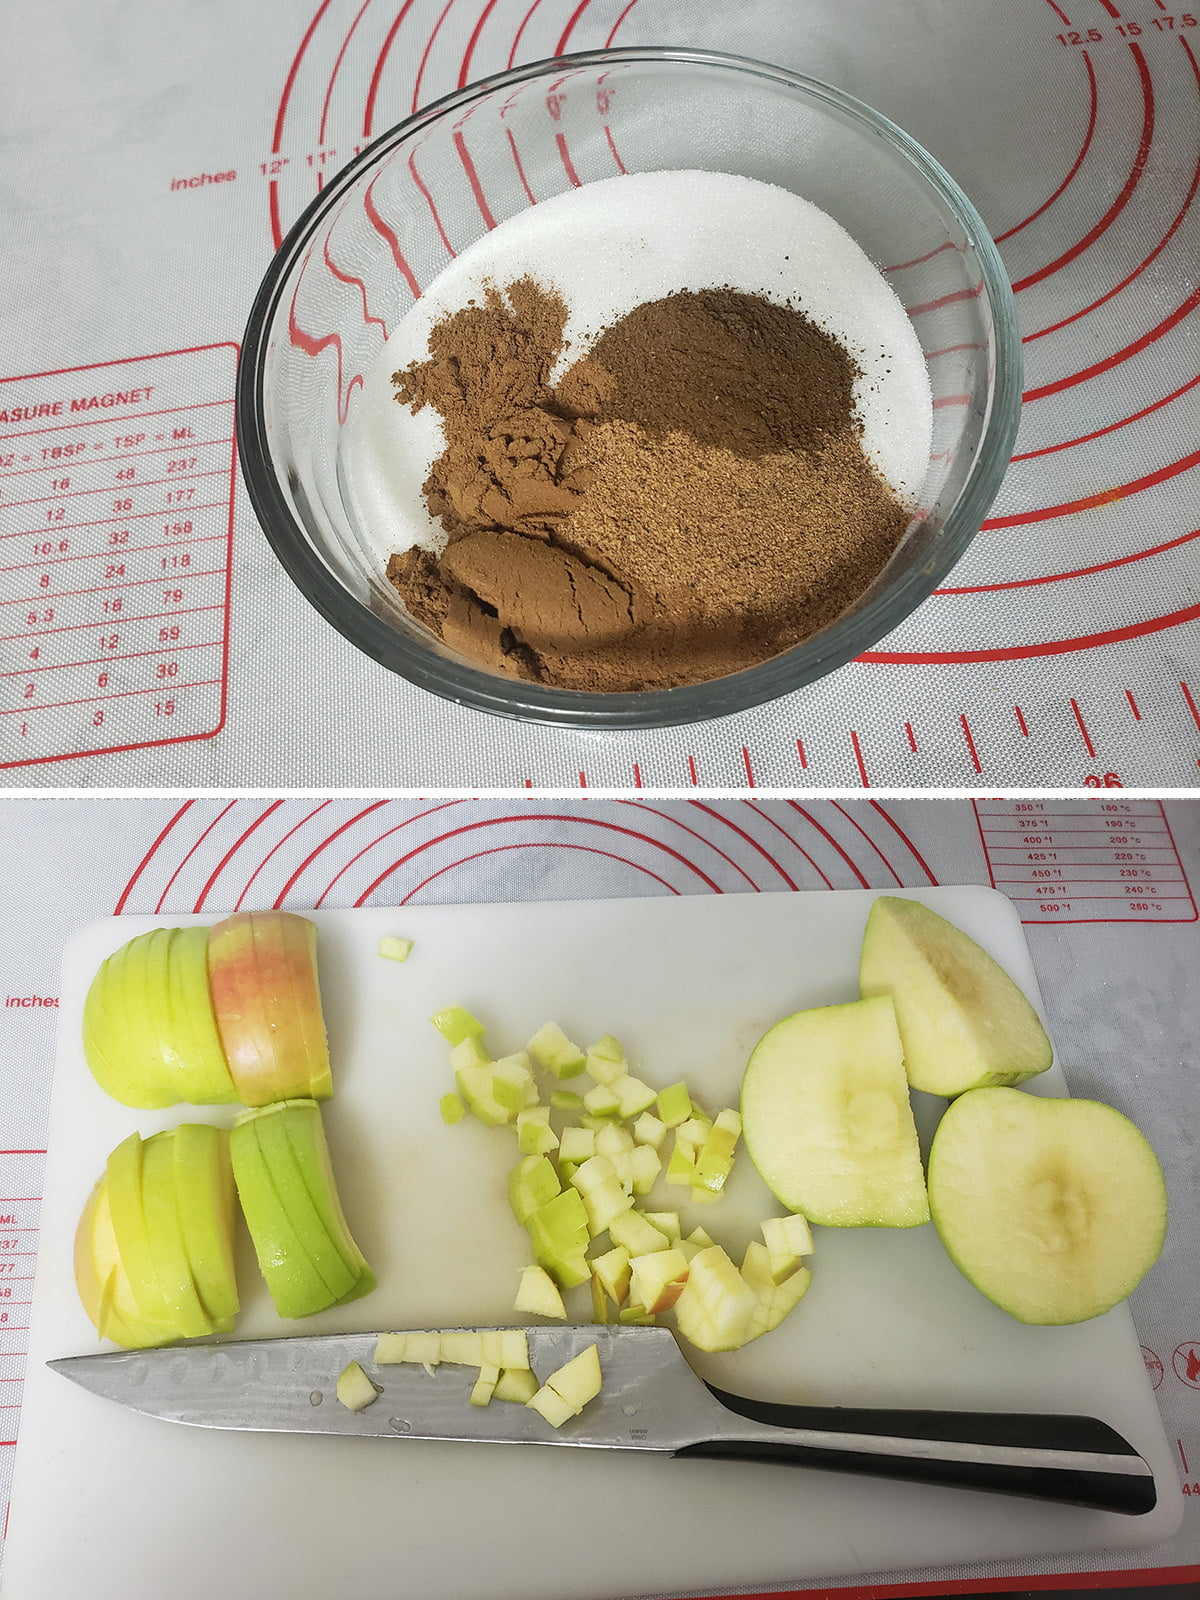 Two photos: The top one shows a bowl of sugar with spices measured out on top, the bottom is a white cutting board, a knife, and two apples in the process of being chopped up.